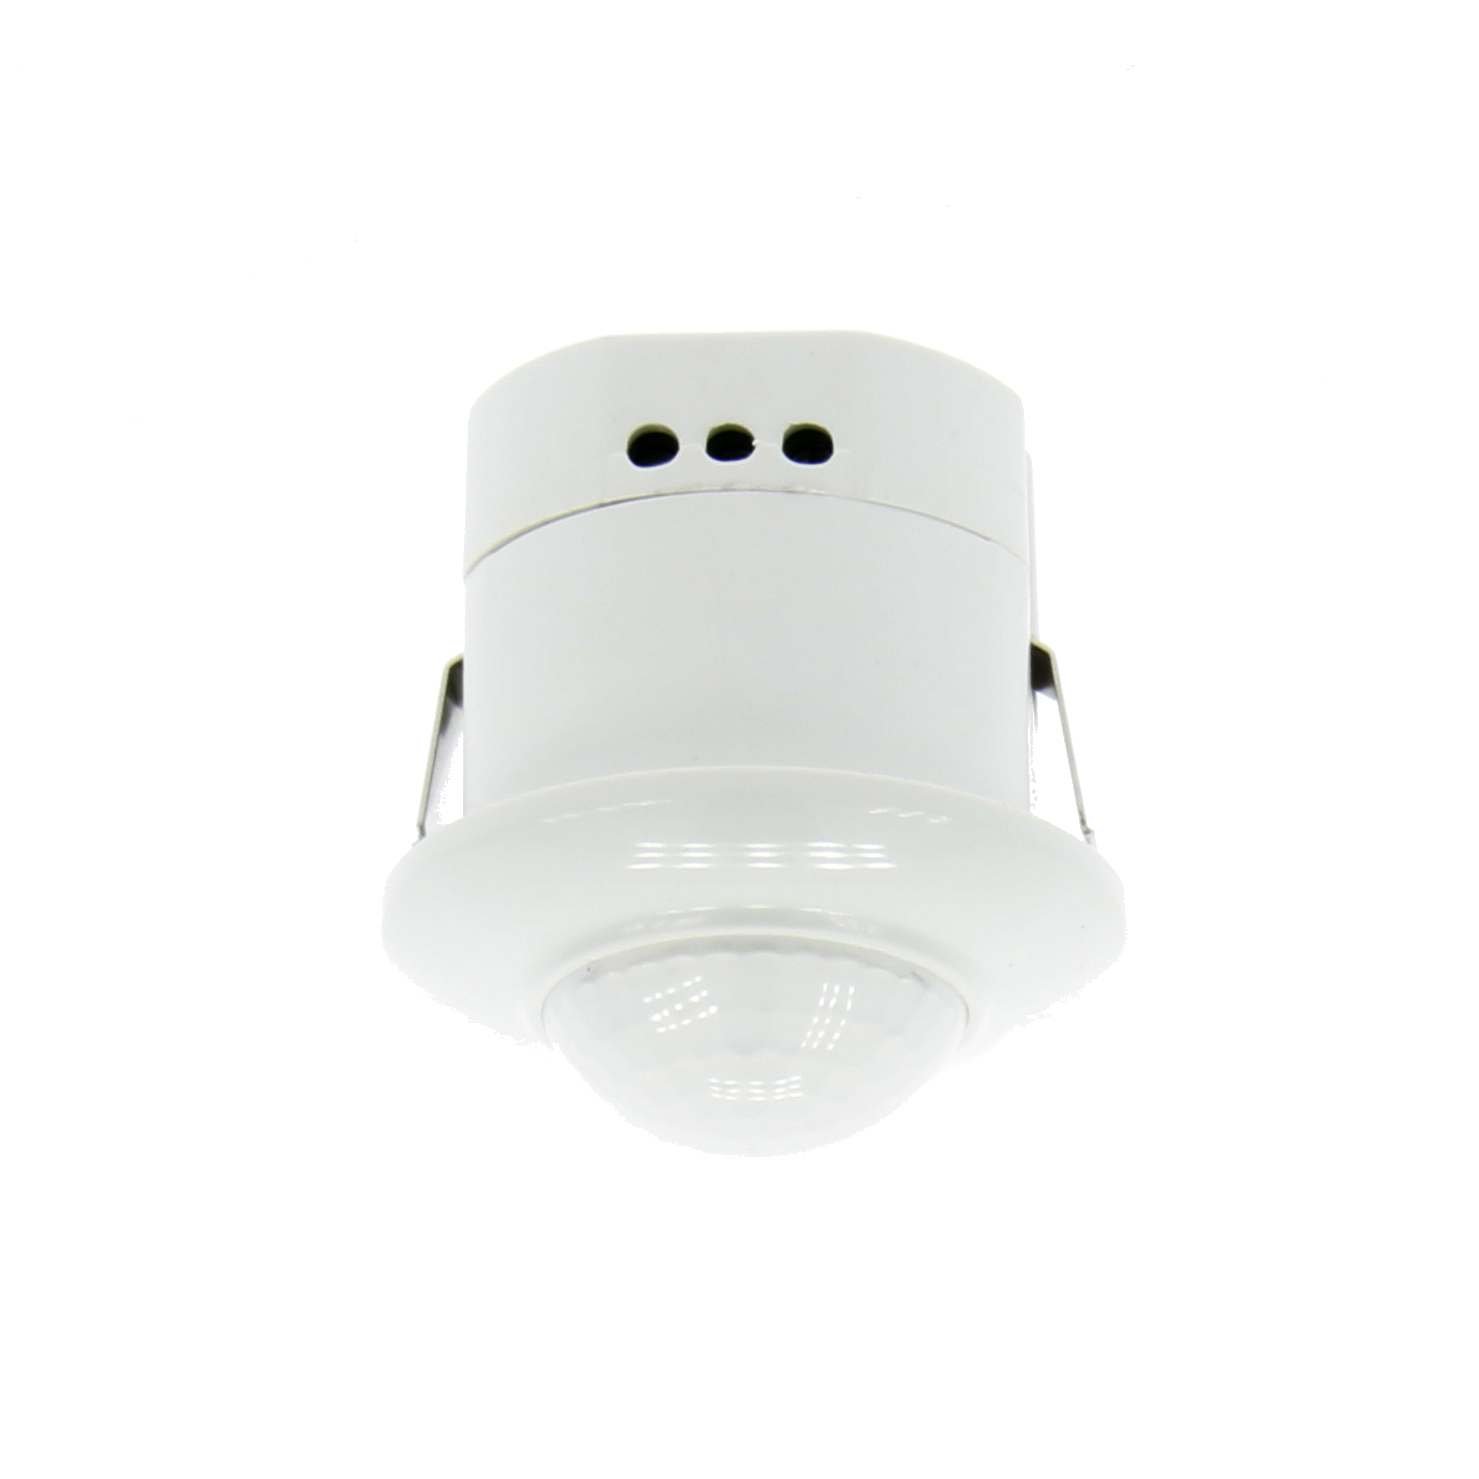 Flush mounted motion sensor mini 1200W 360°